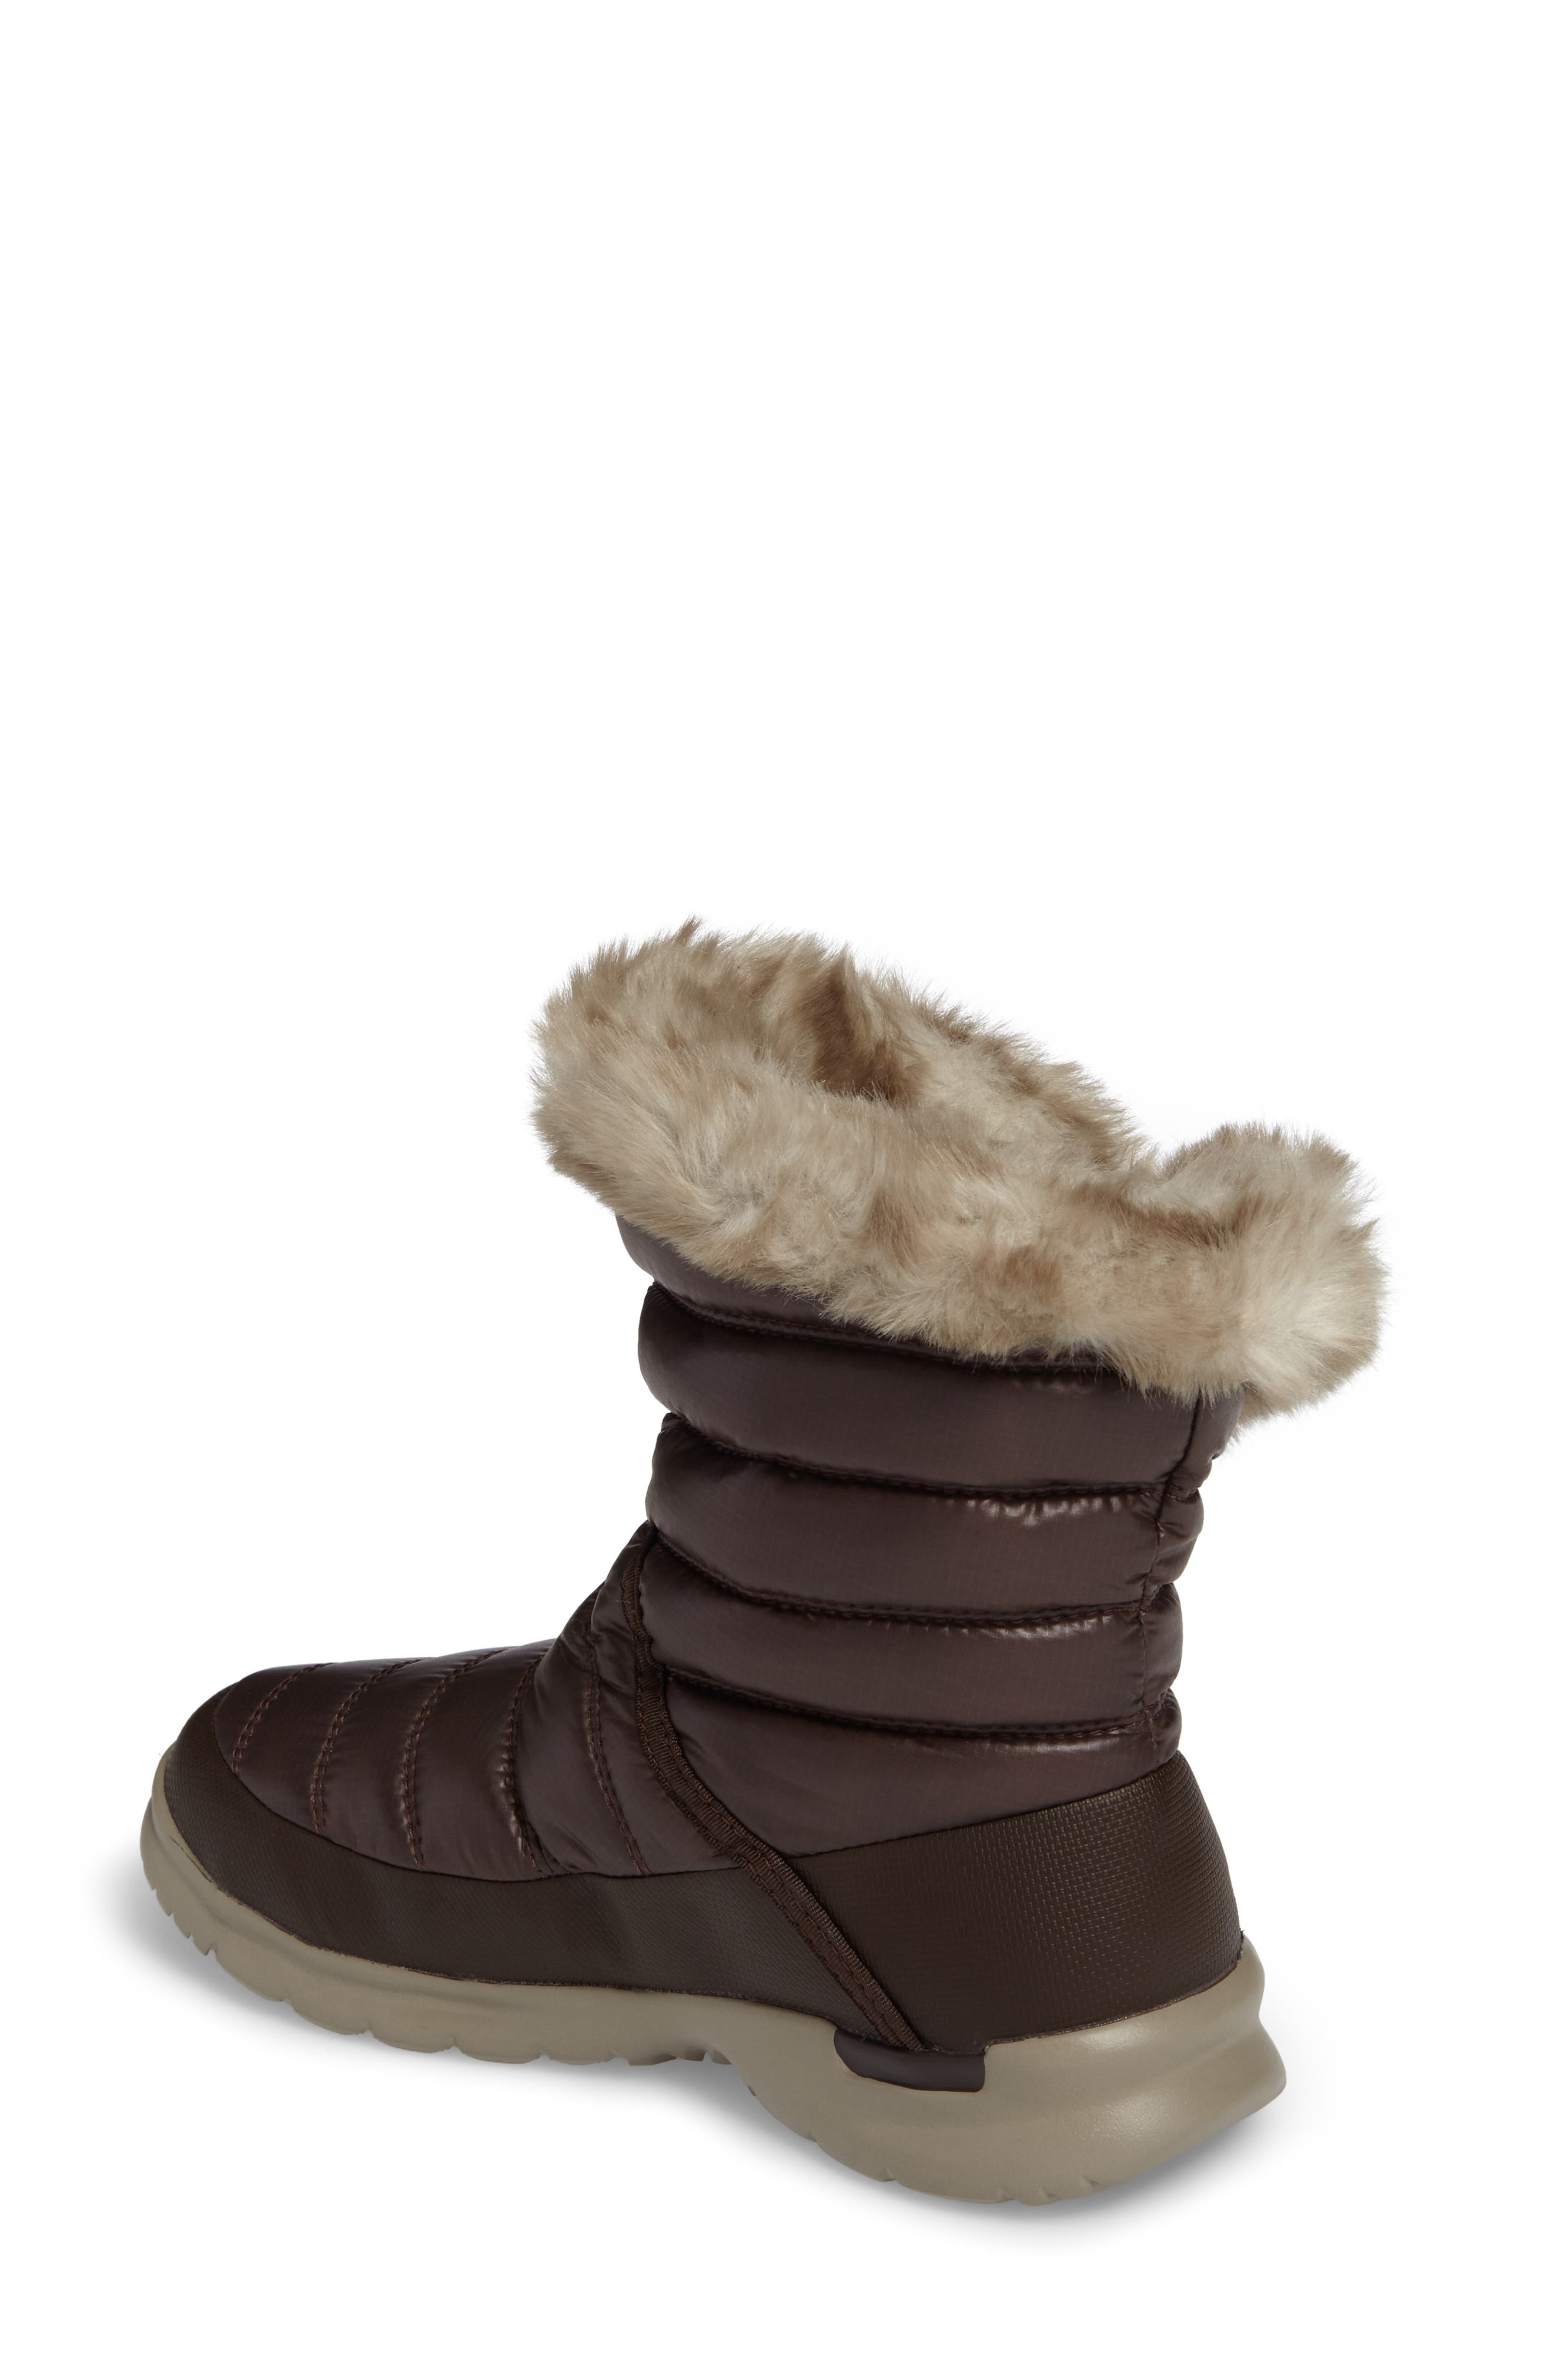 Alternate Image 2  - The North Face Microbaffle Waterproof ThermoBall™ Insulated Winter Boot (Women)